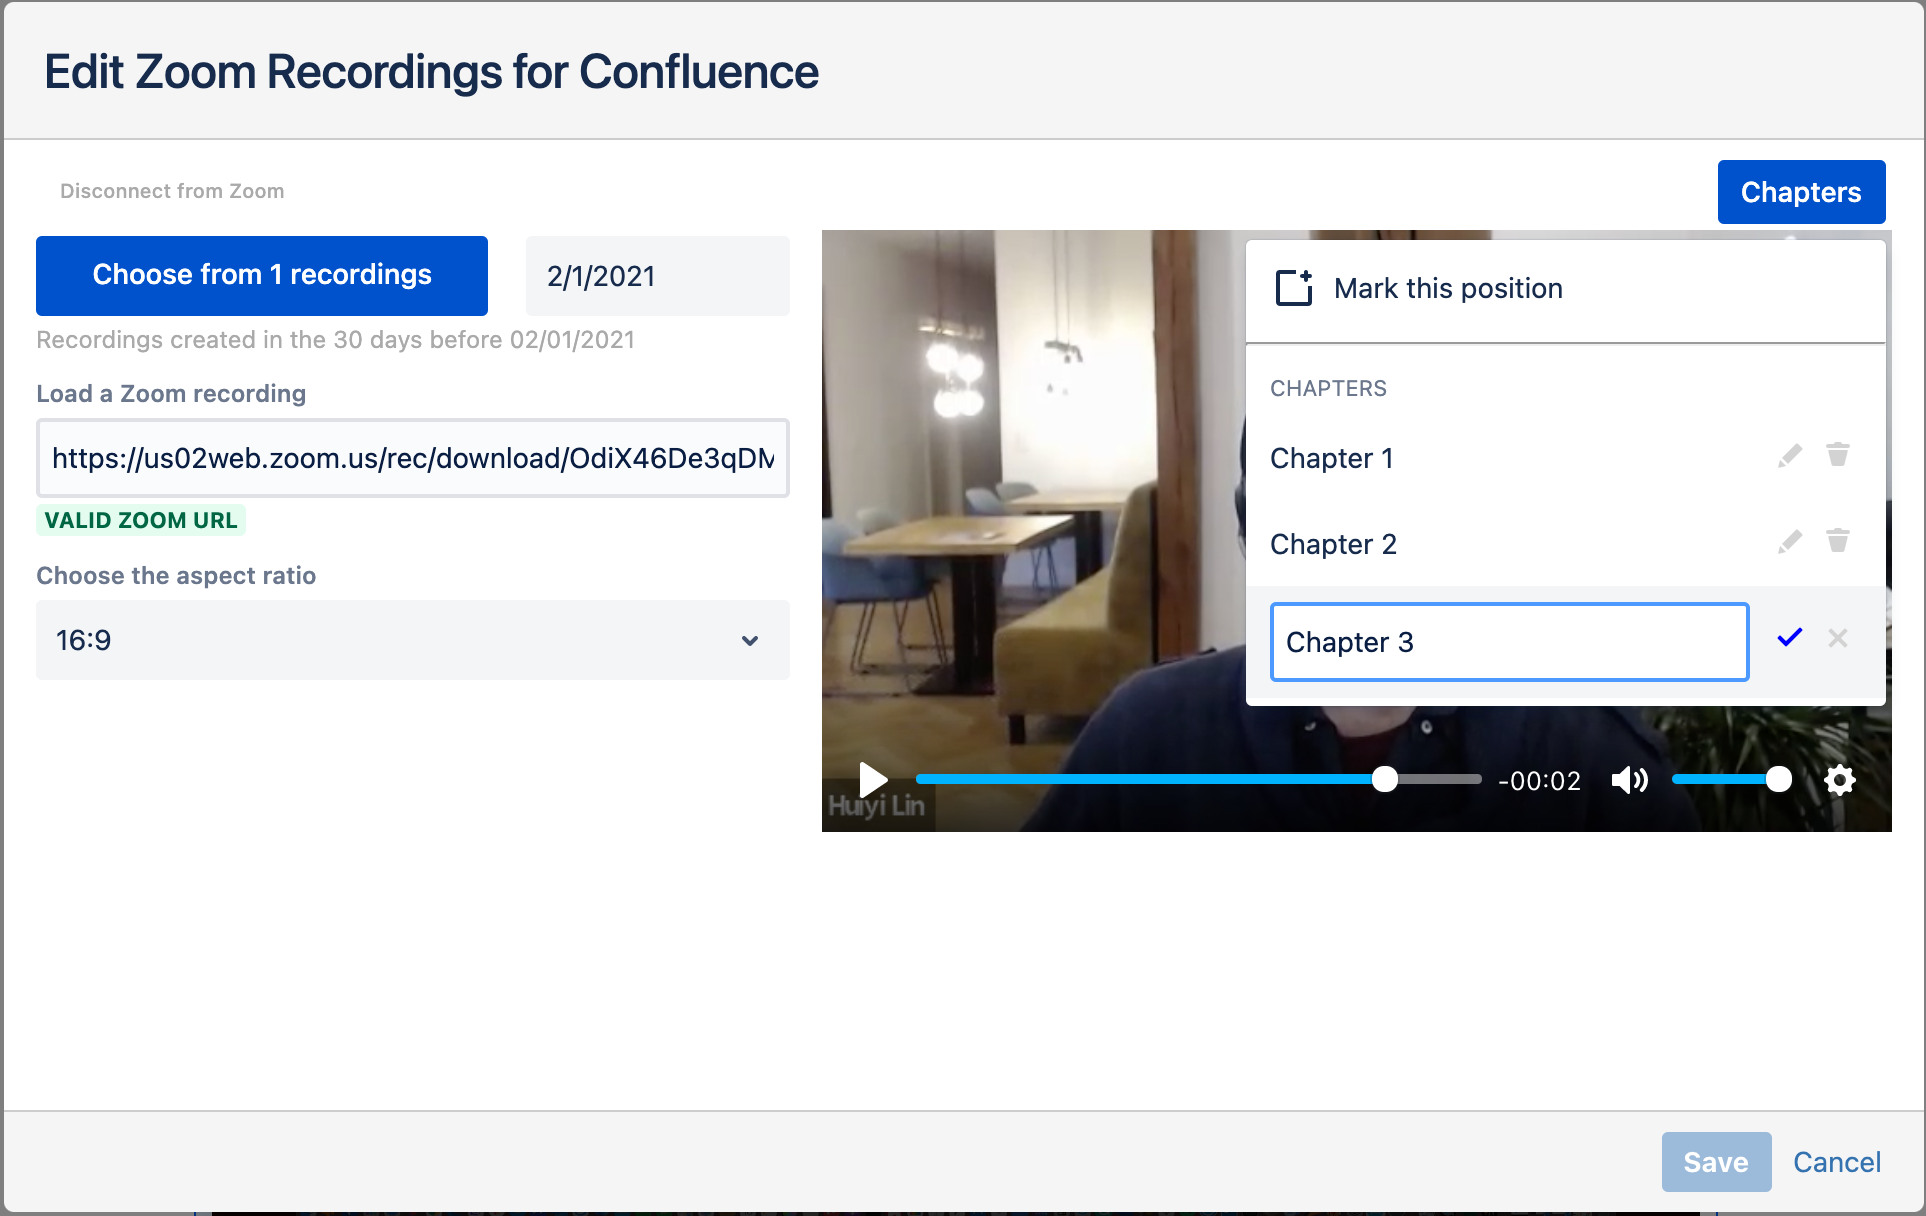 Adding Chapters in the Embed Zoom Recordings for Confluence Macro